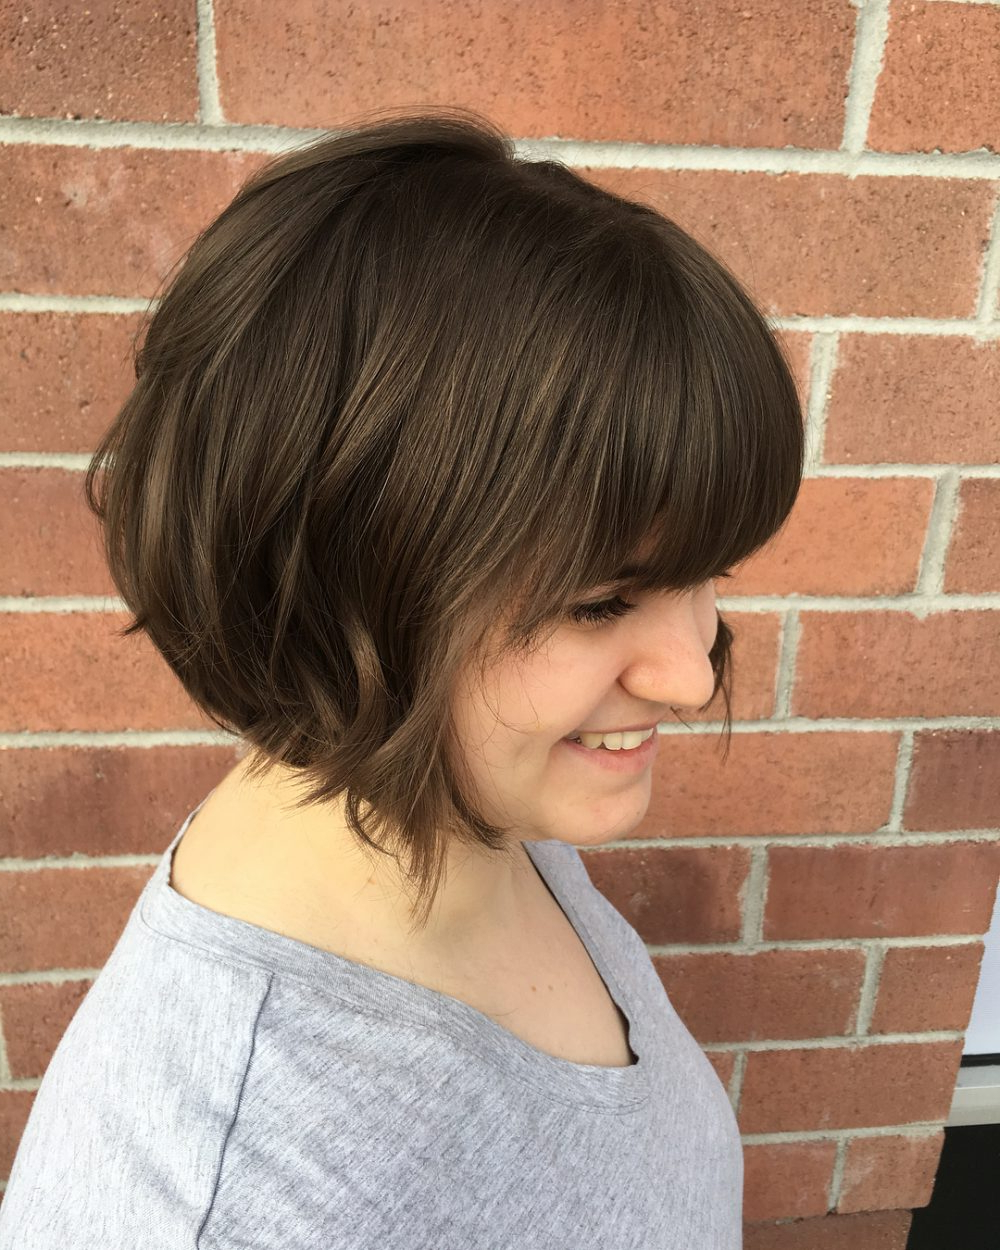 34 Greatest Short Haircuts And Hairstyles For Thick Hair For 2018 For Edgy Short Haircuts For Thick Hair (View 13 of 25)